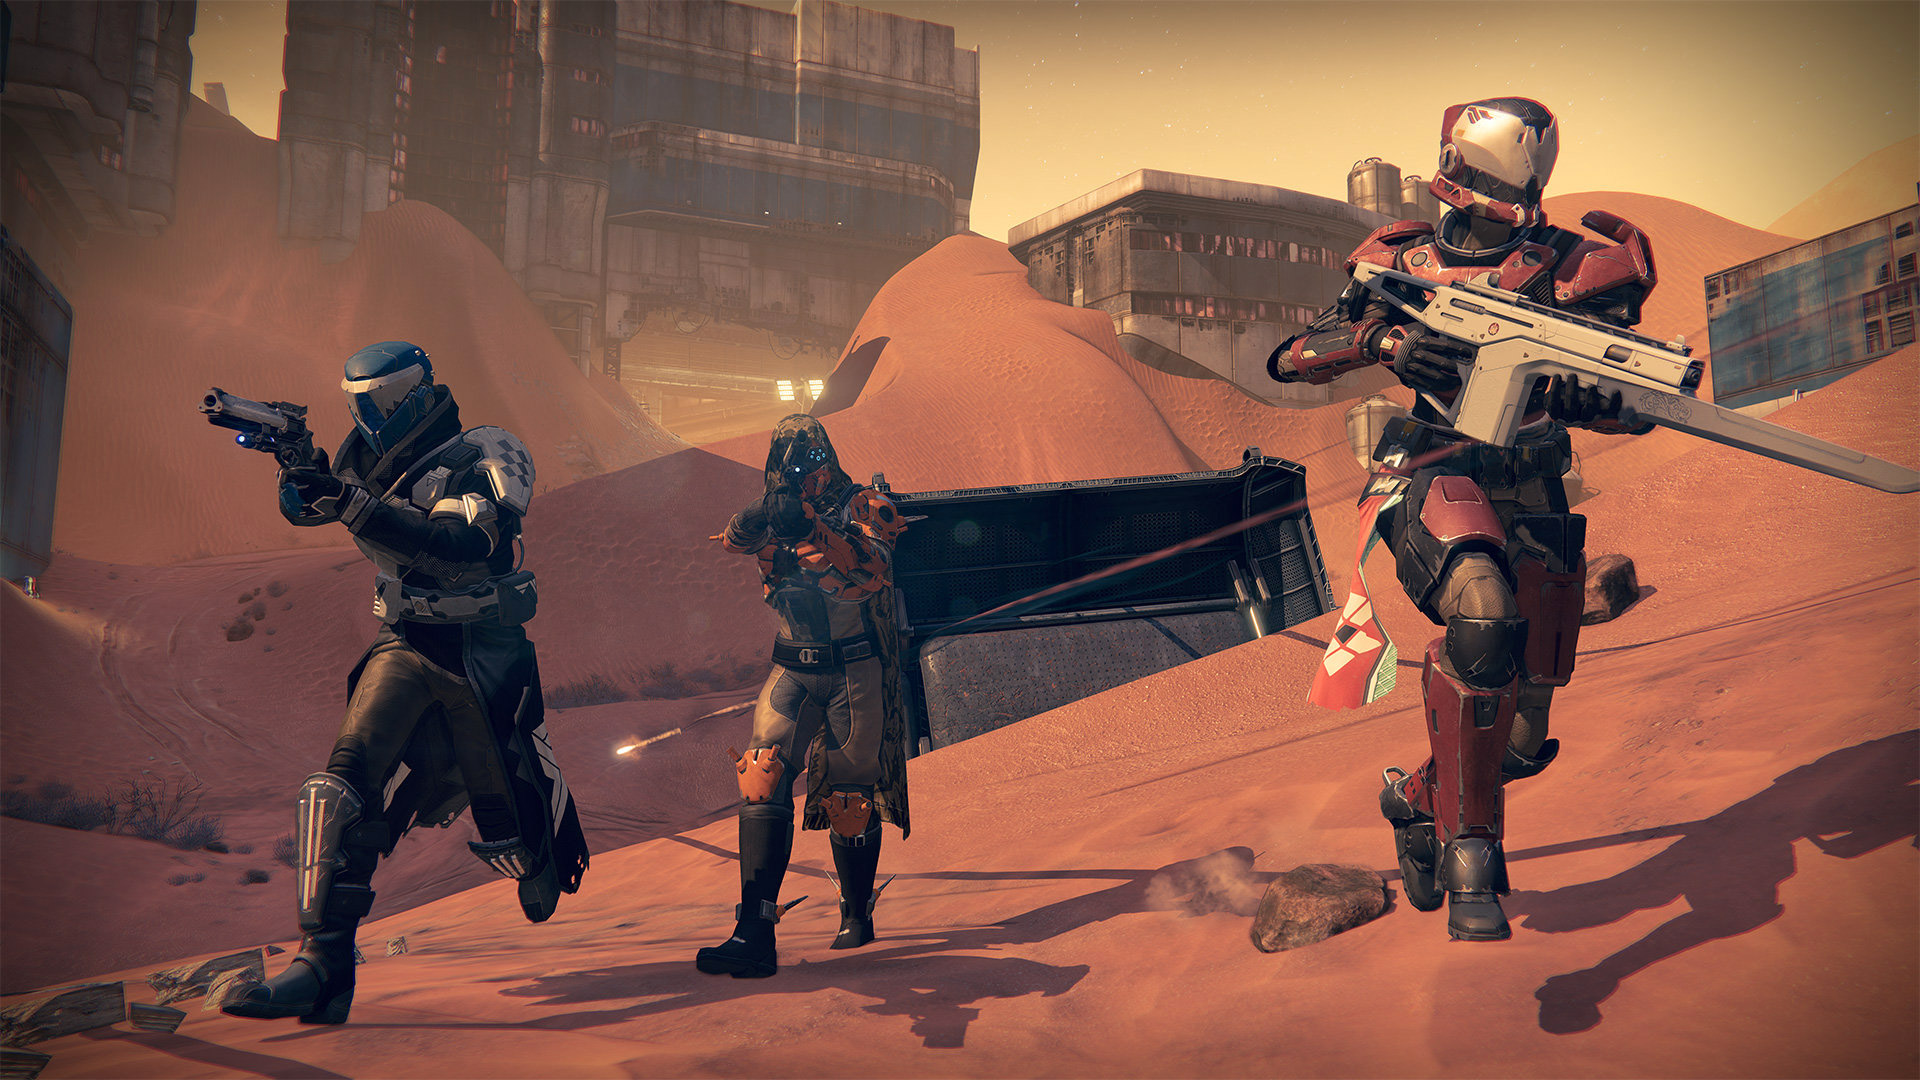 Destiny's free legendary gifts have arrived!